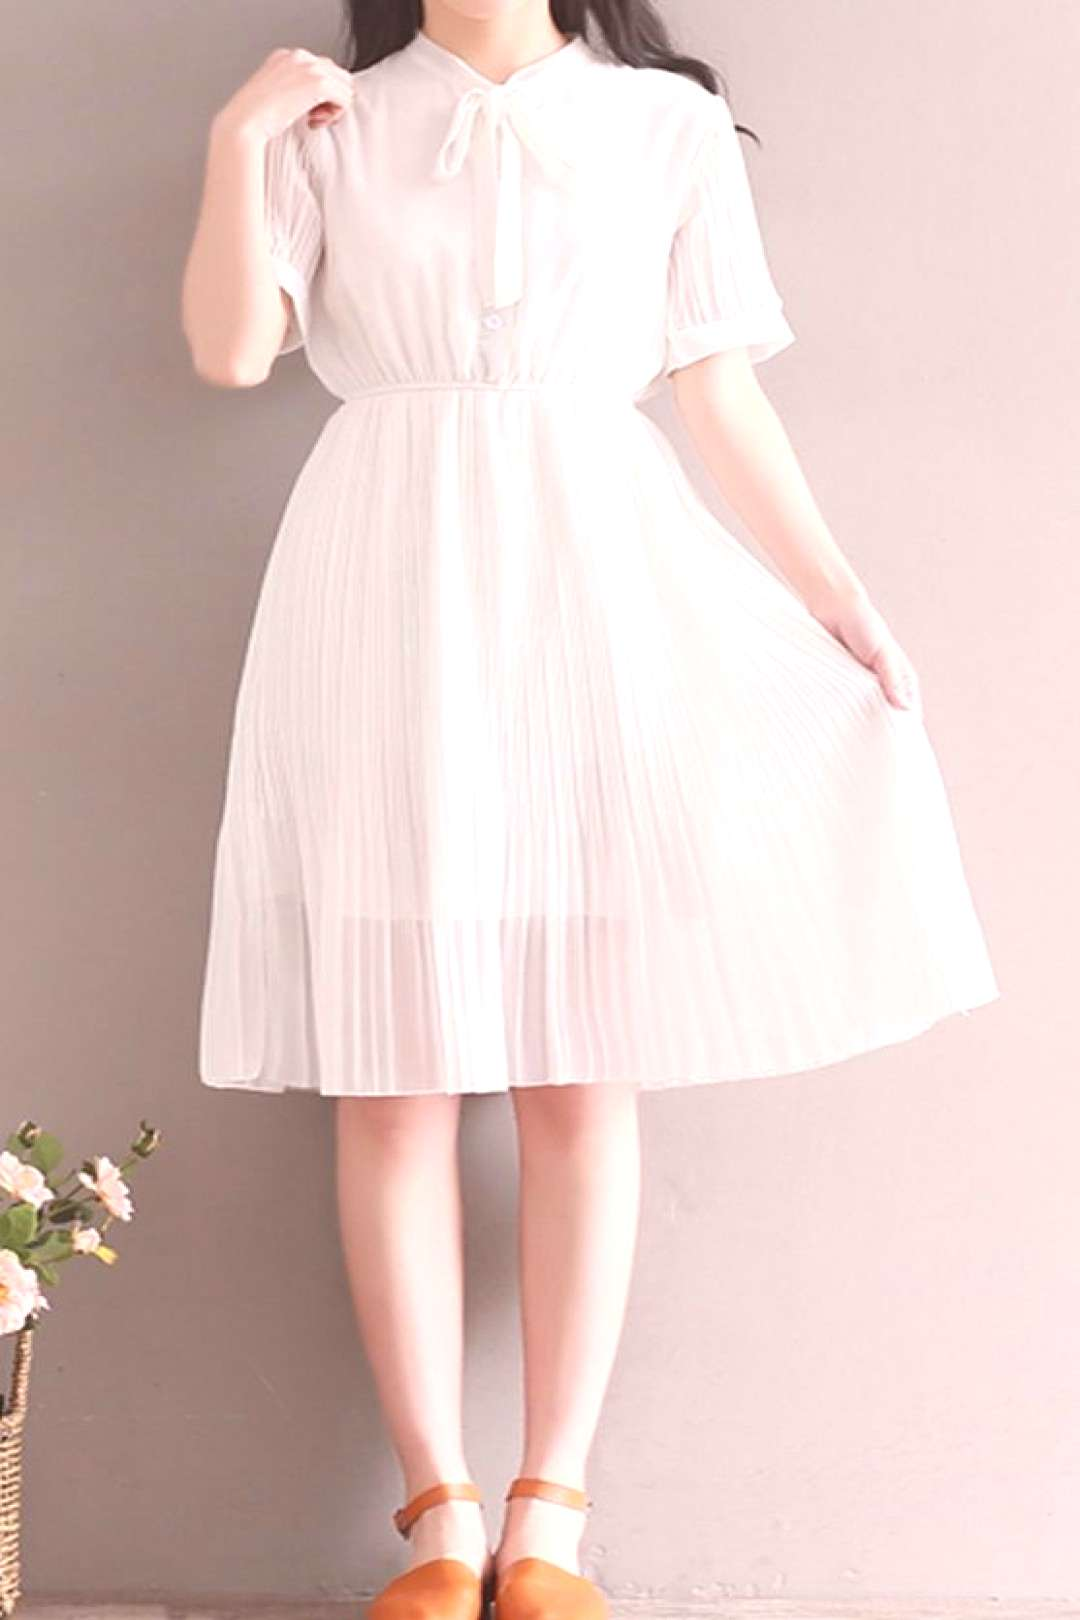 Women loose fit over plus size retro bow ribbon collar white dress classic chic#bow